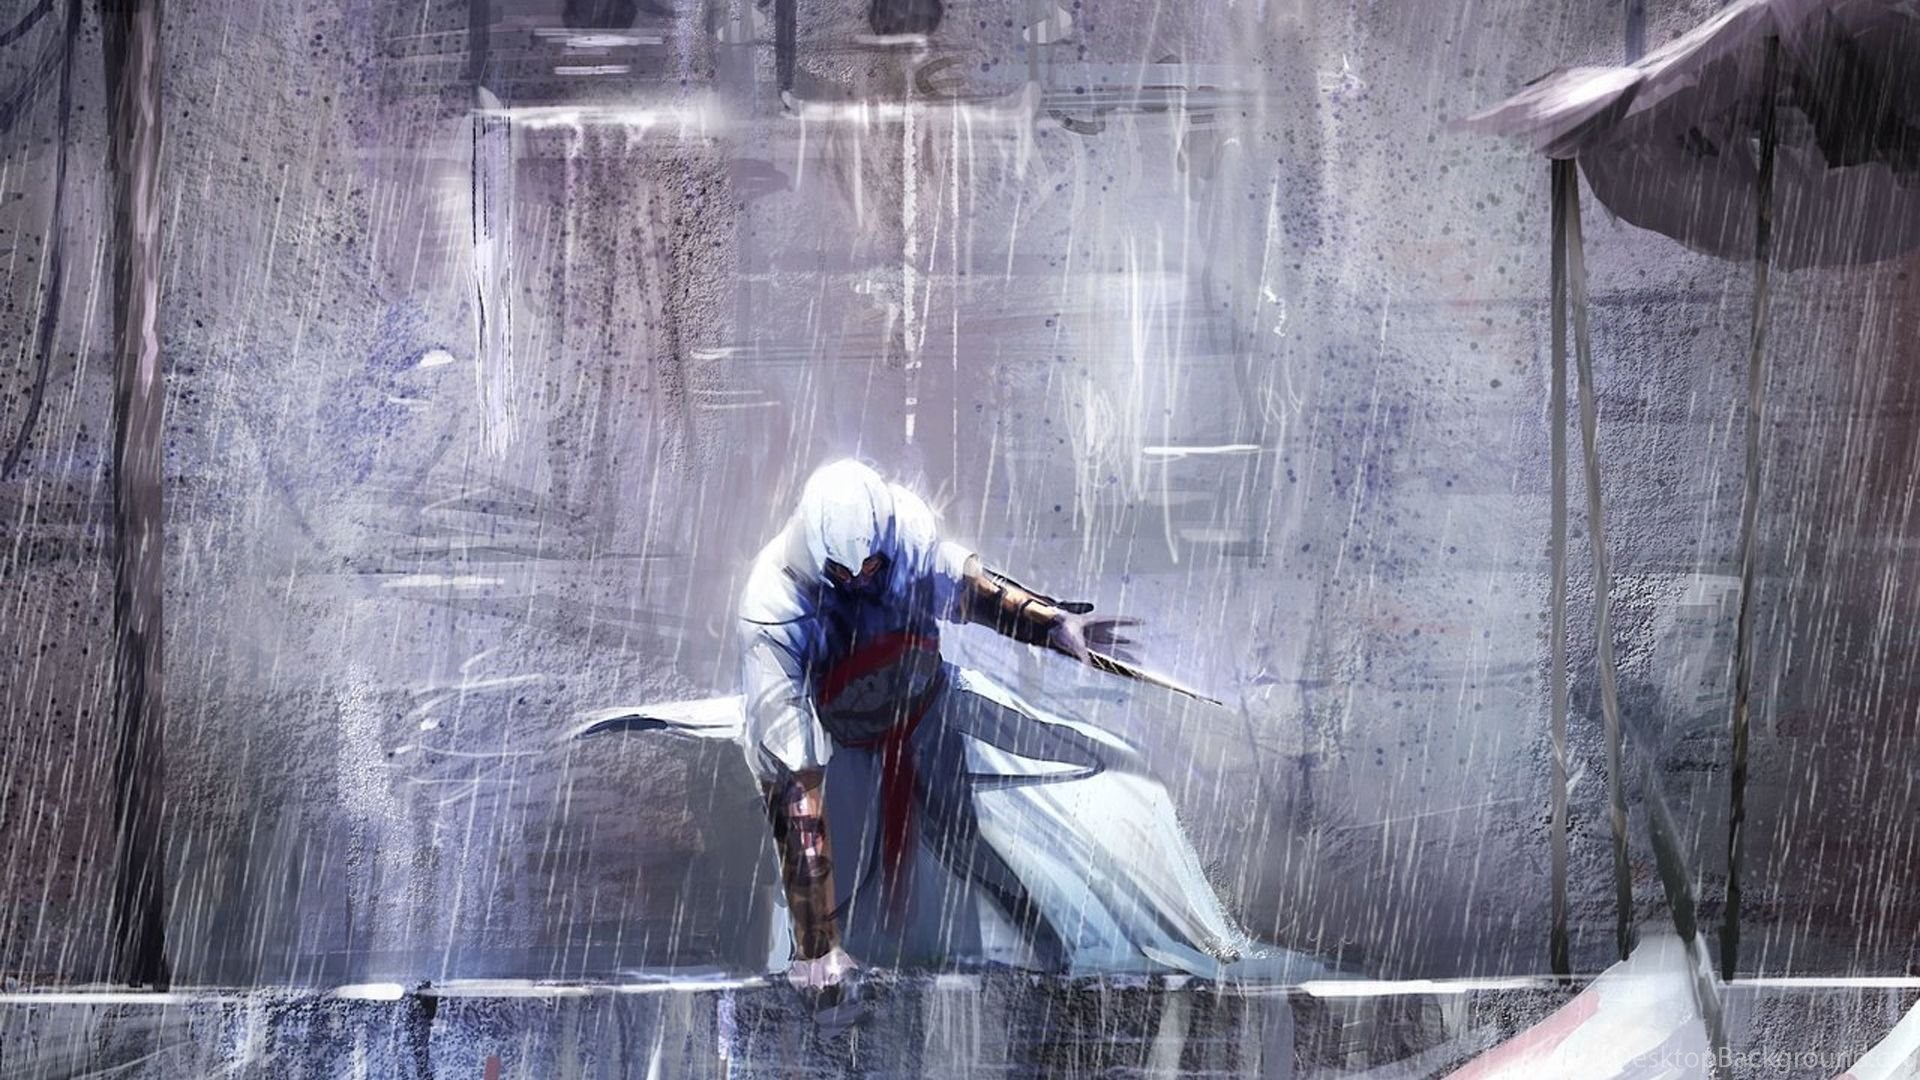 Assassins Creed Wallpapers Hd 1277686 Desktop Background